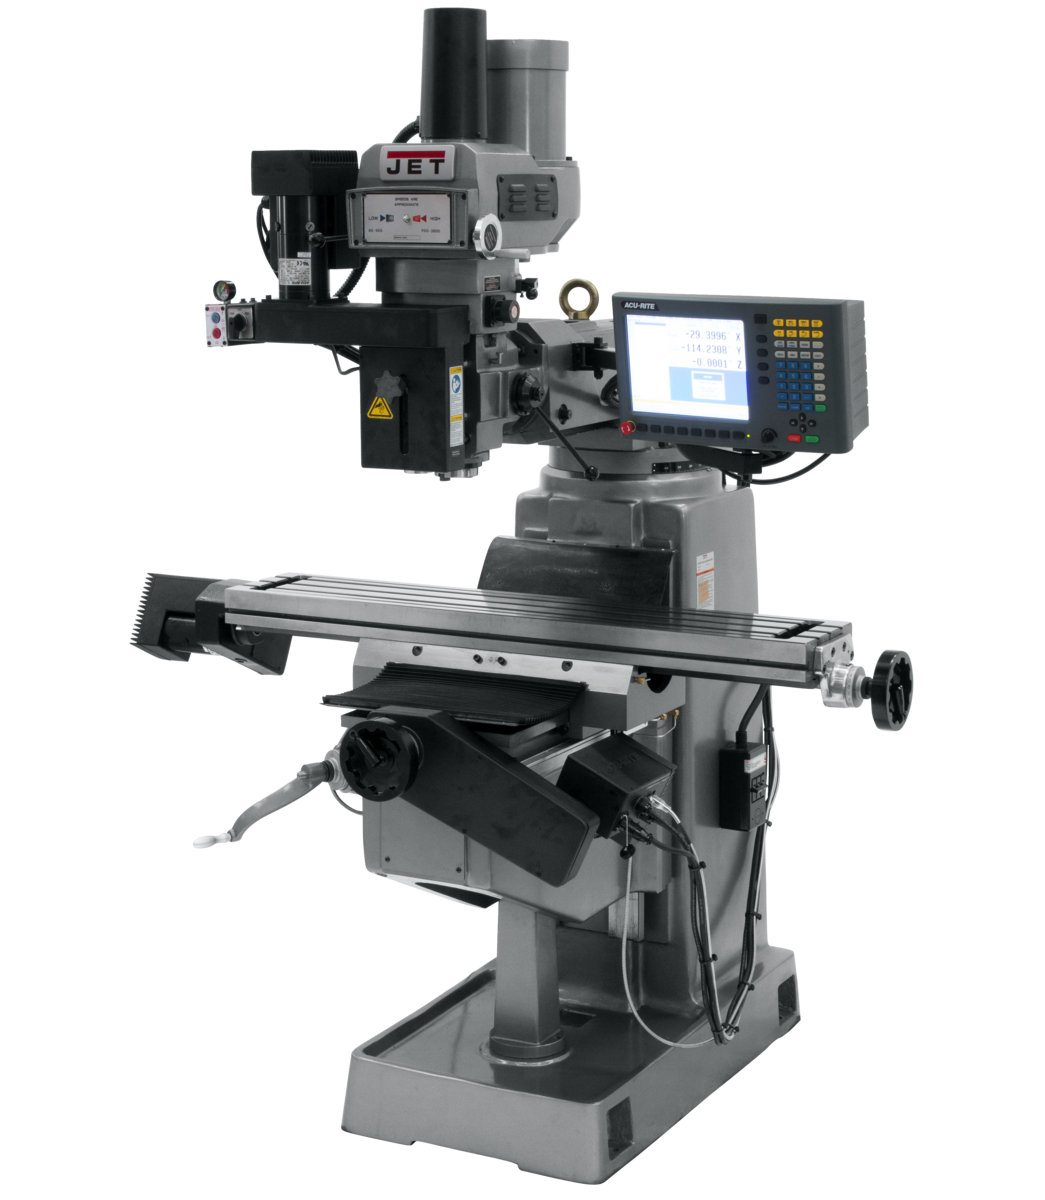 JTM-1050EVS2/230 Mill With 3-Axis Acu-Rite MilPwr G2 CNC Controller with Air Powered Drawbar